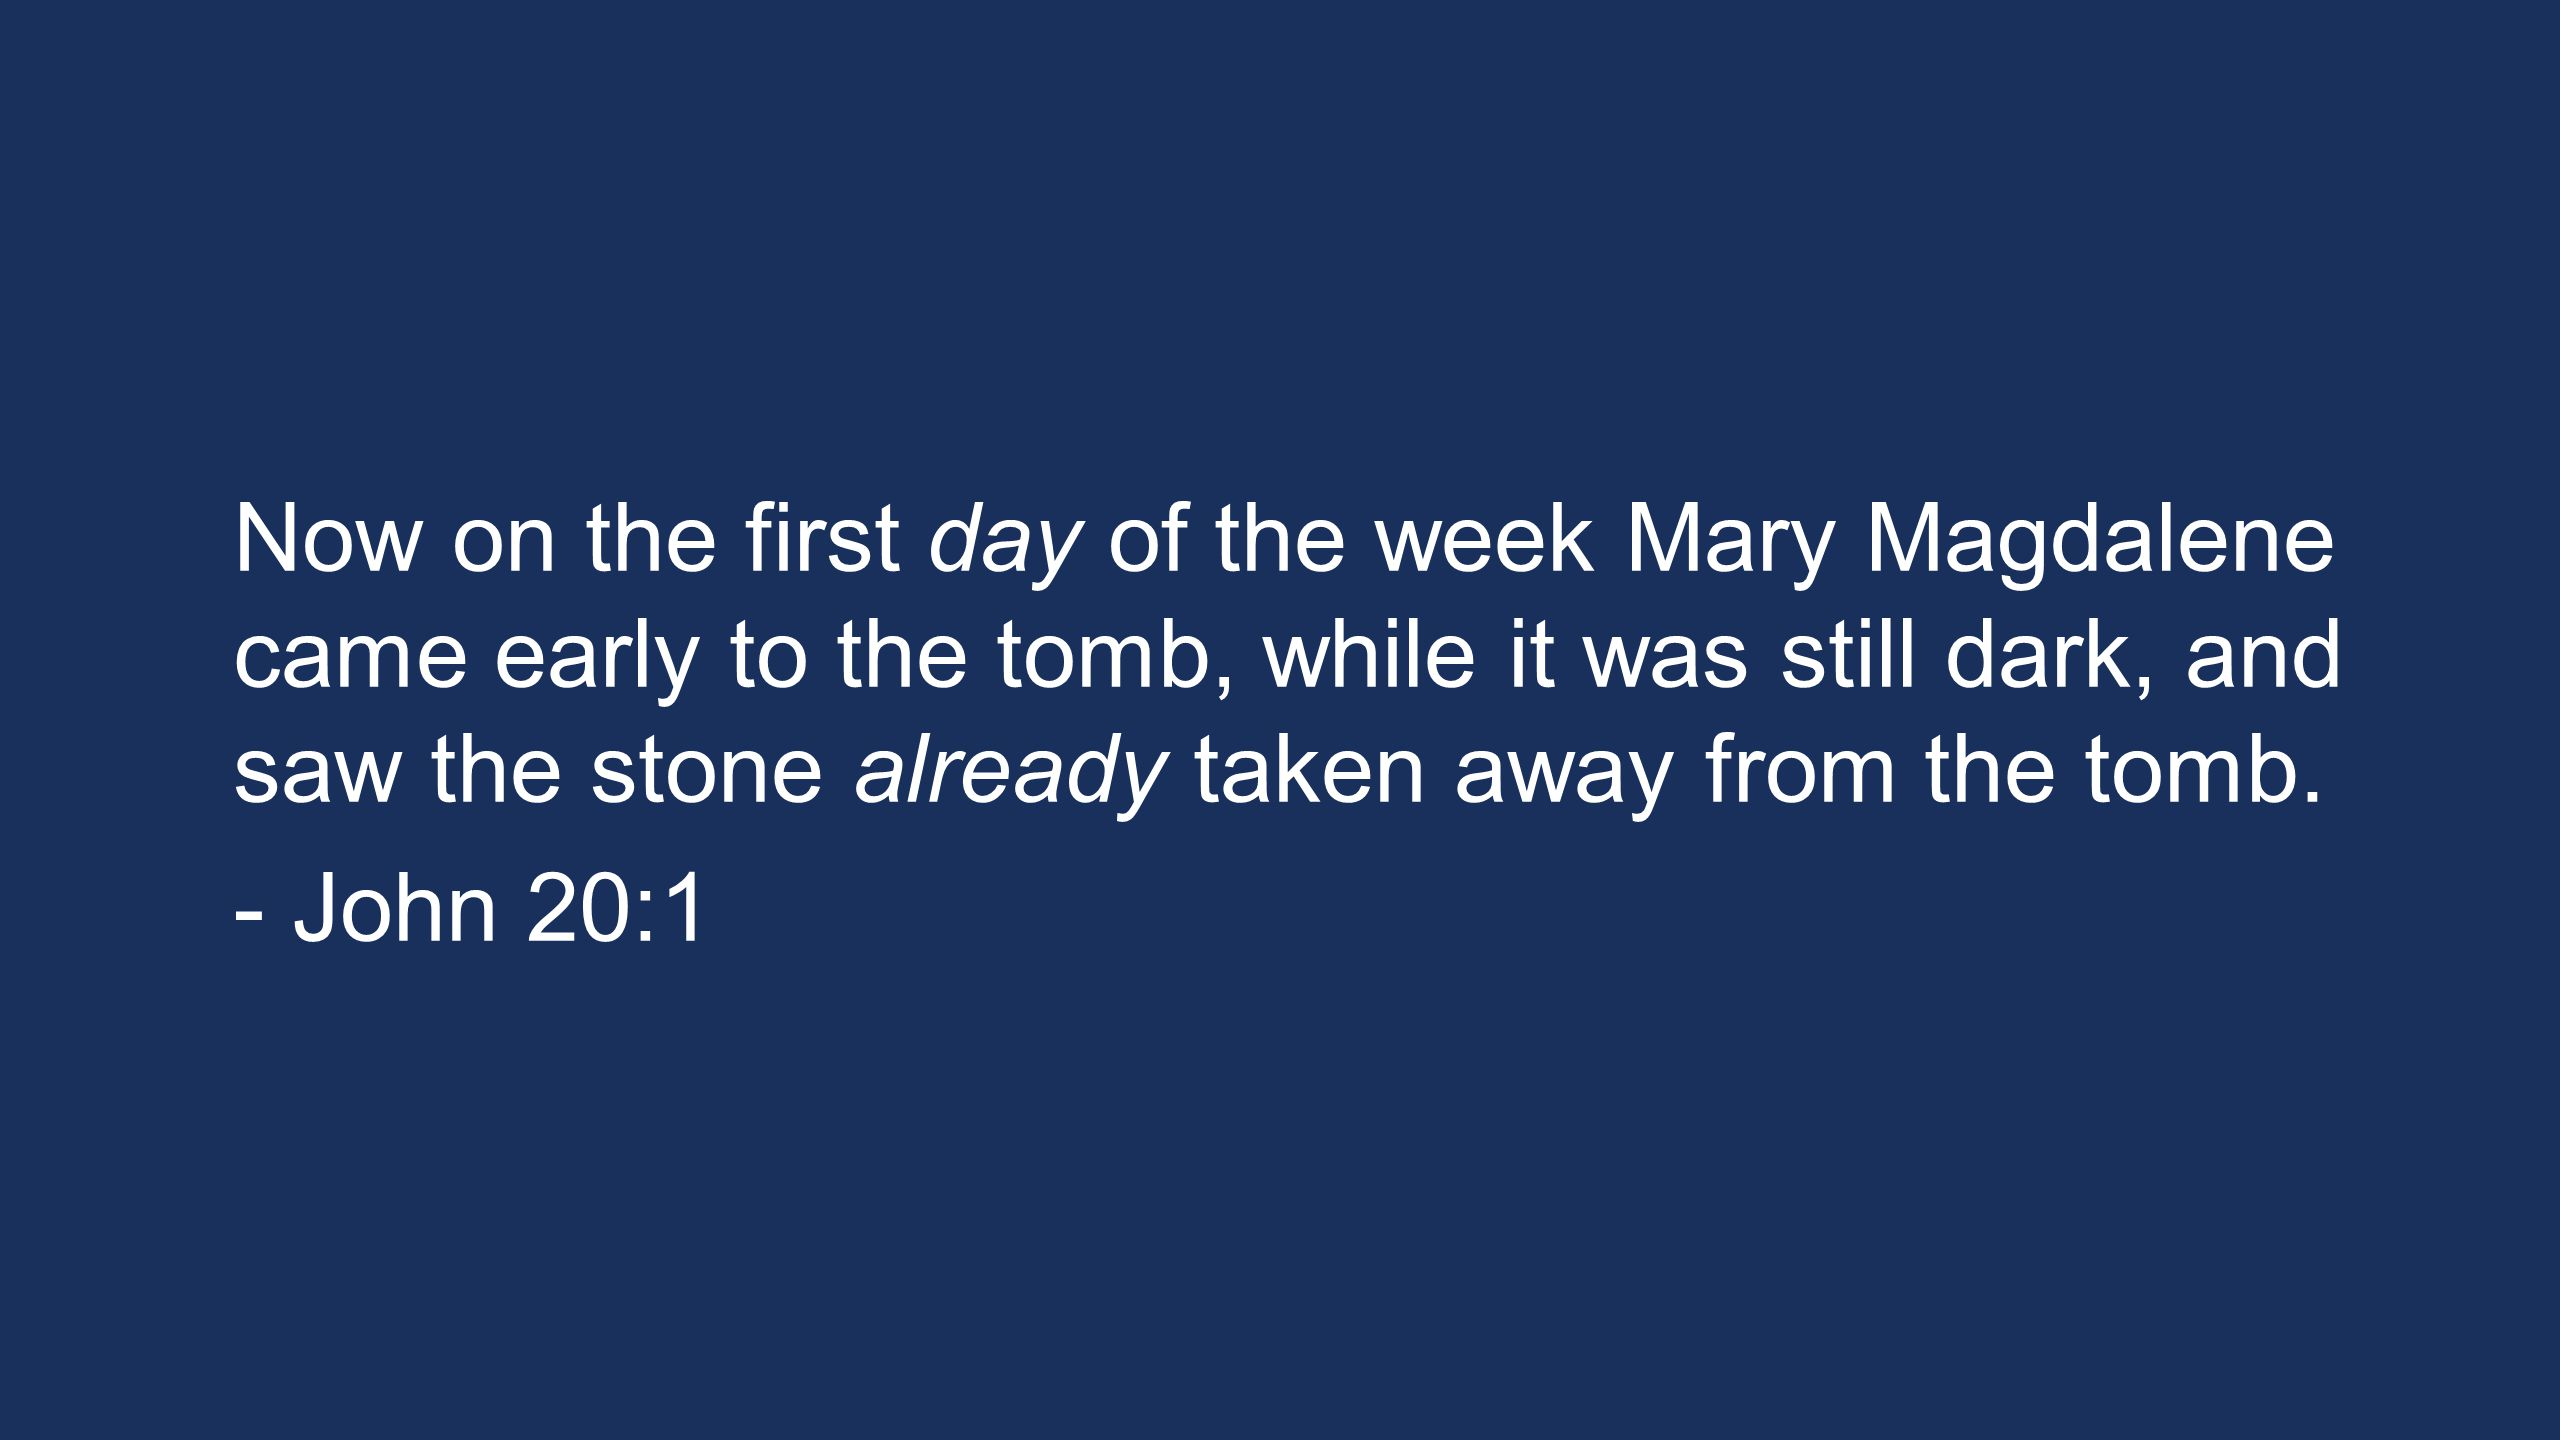 Now on the first day of the week Mary Magdalene came early to the tomb, while it was still dark, and saw the stone already taken away from the tomb. -